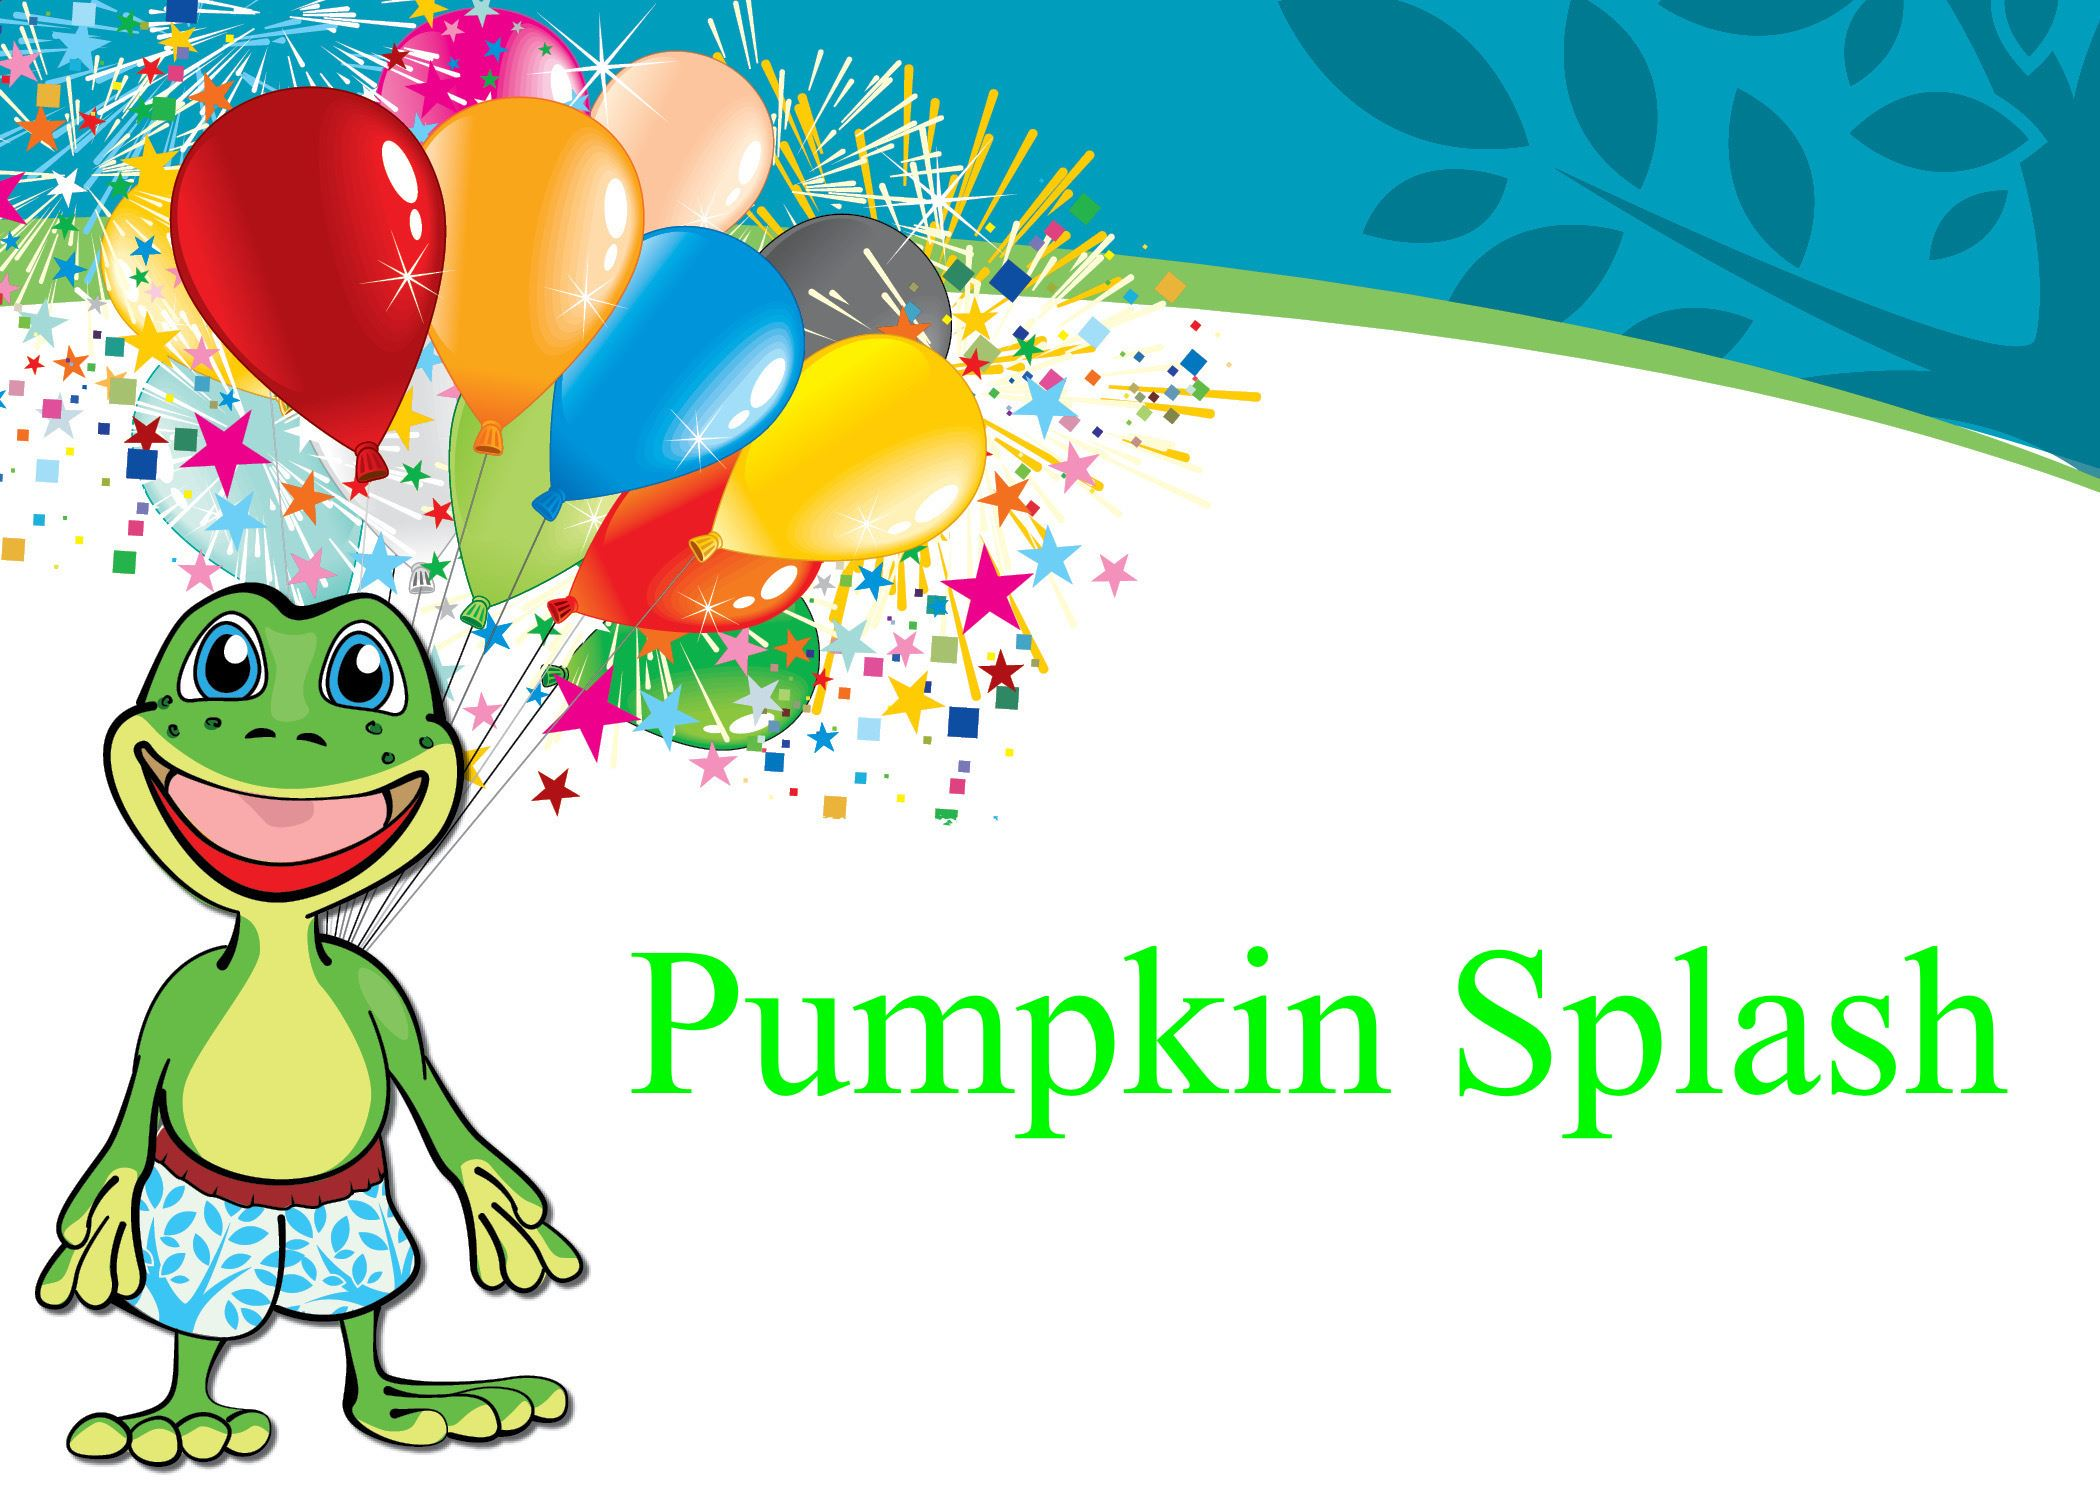 Pumpkin Splash